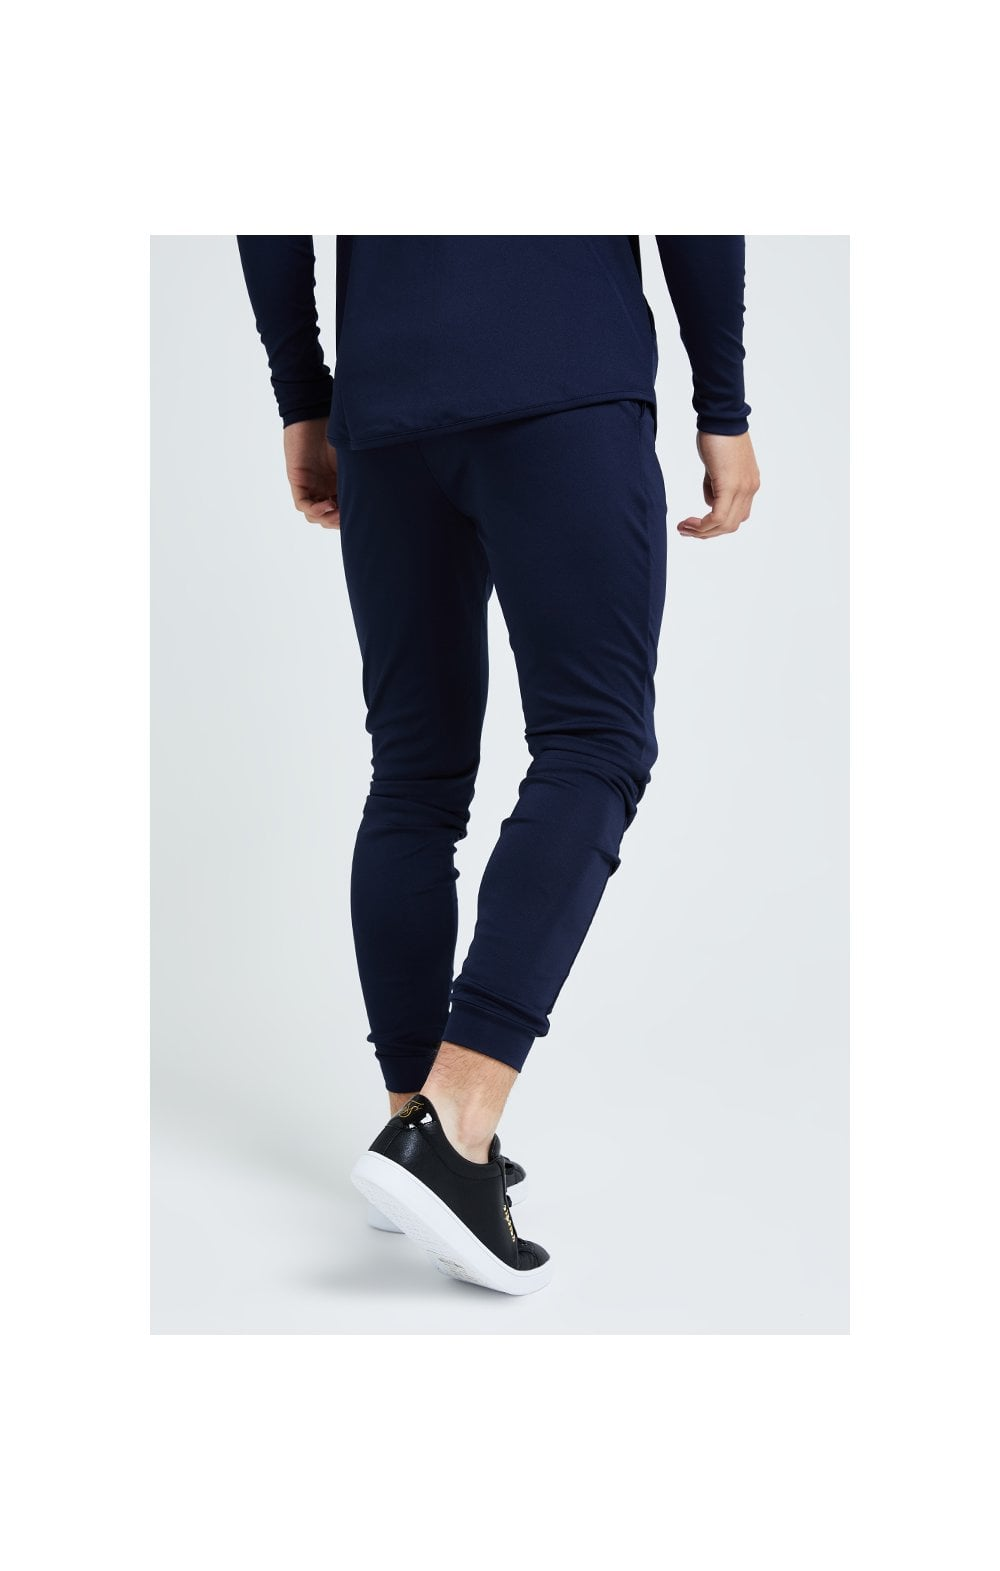 Illusive London Core Fitted Joggers - Navy (3)